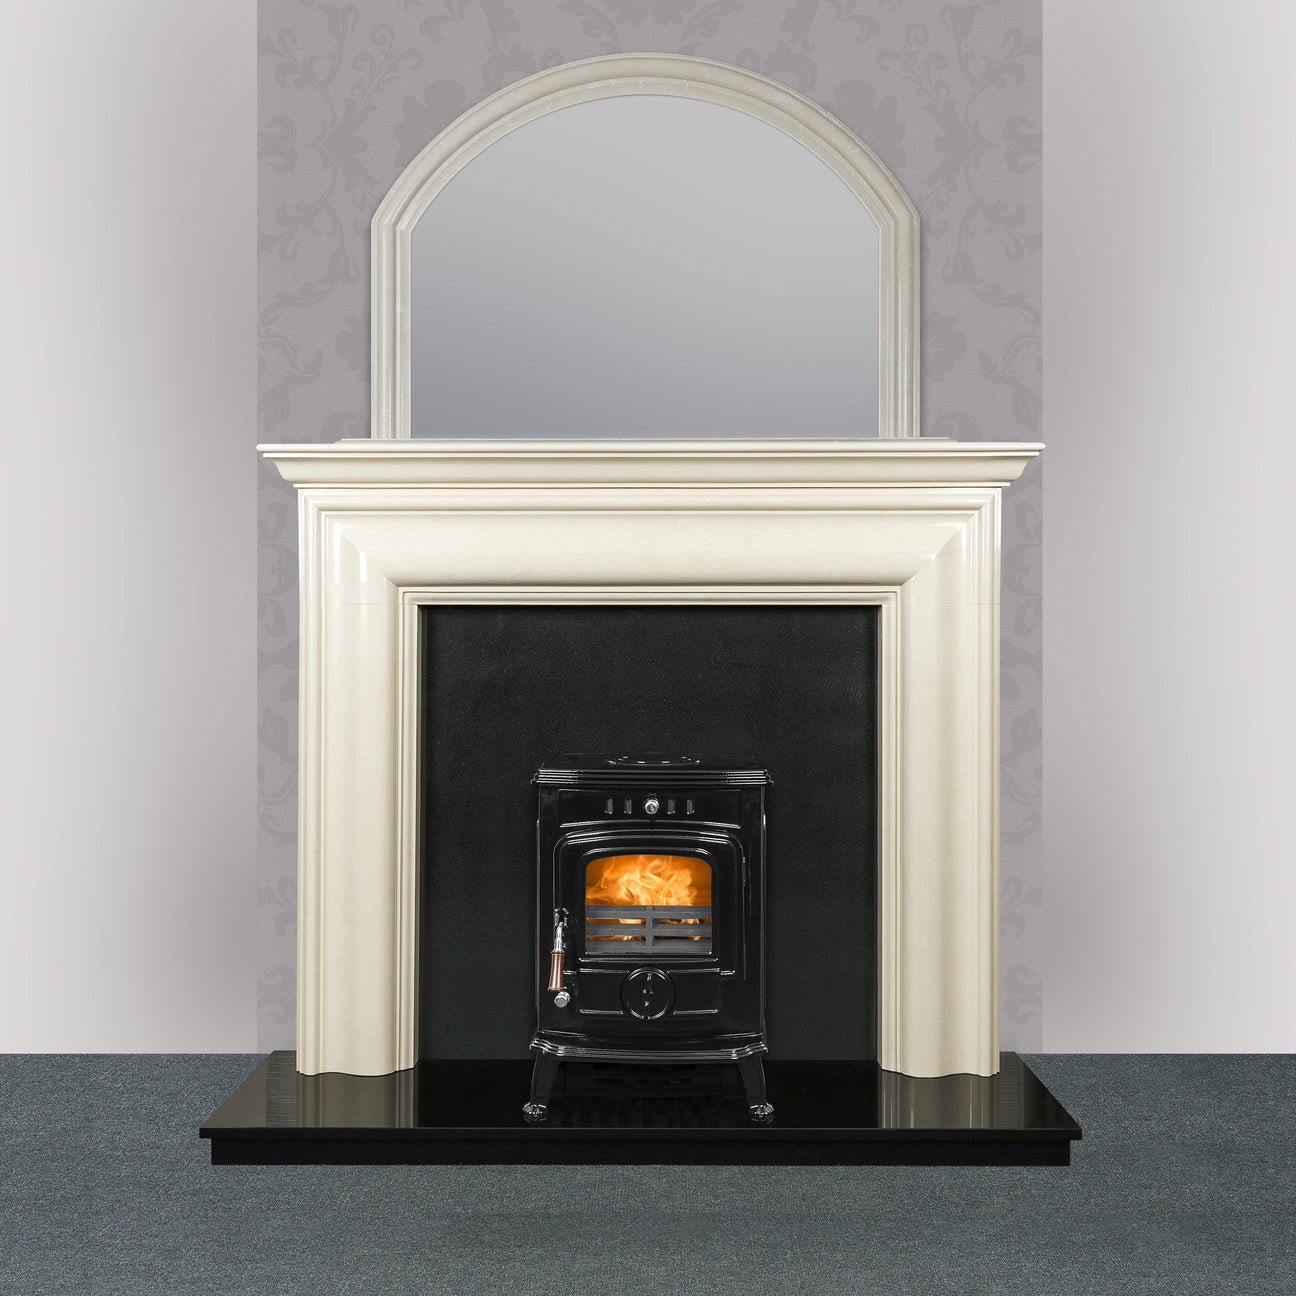 Image of Blake Fireplace in ivory pearl with The Robin Solid Fuel stove